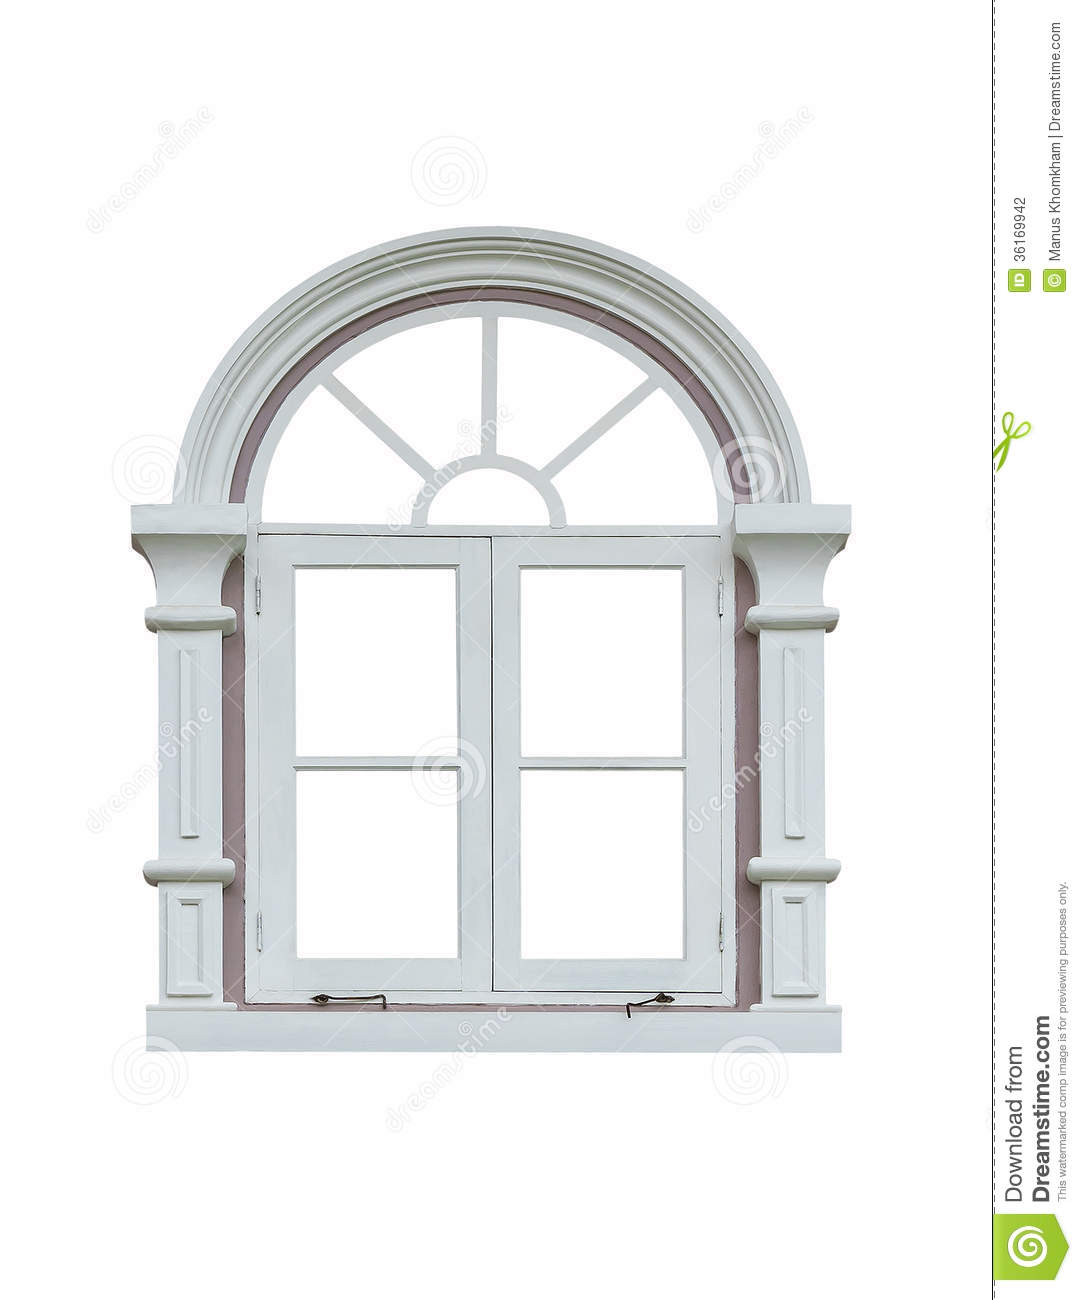 White window frame - Background Frame Isolated Window